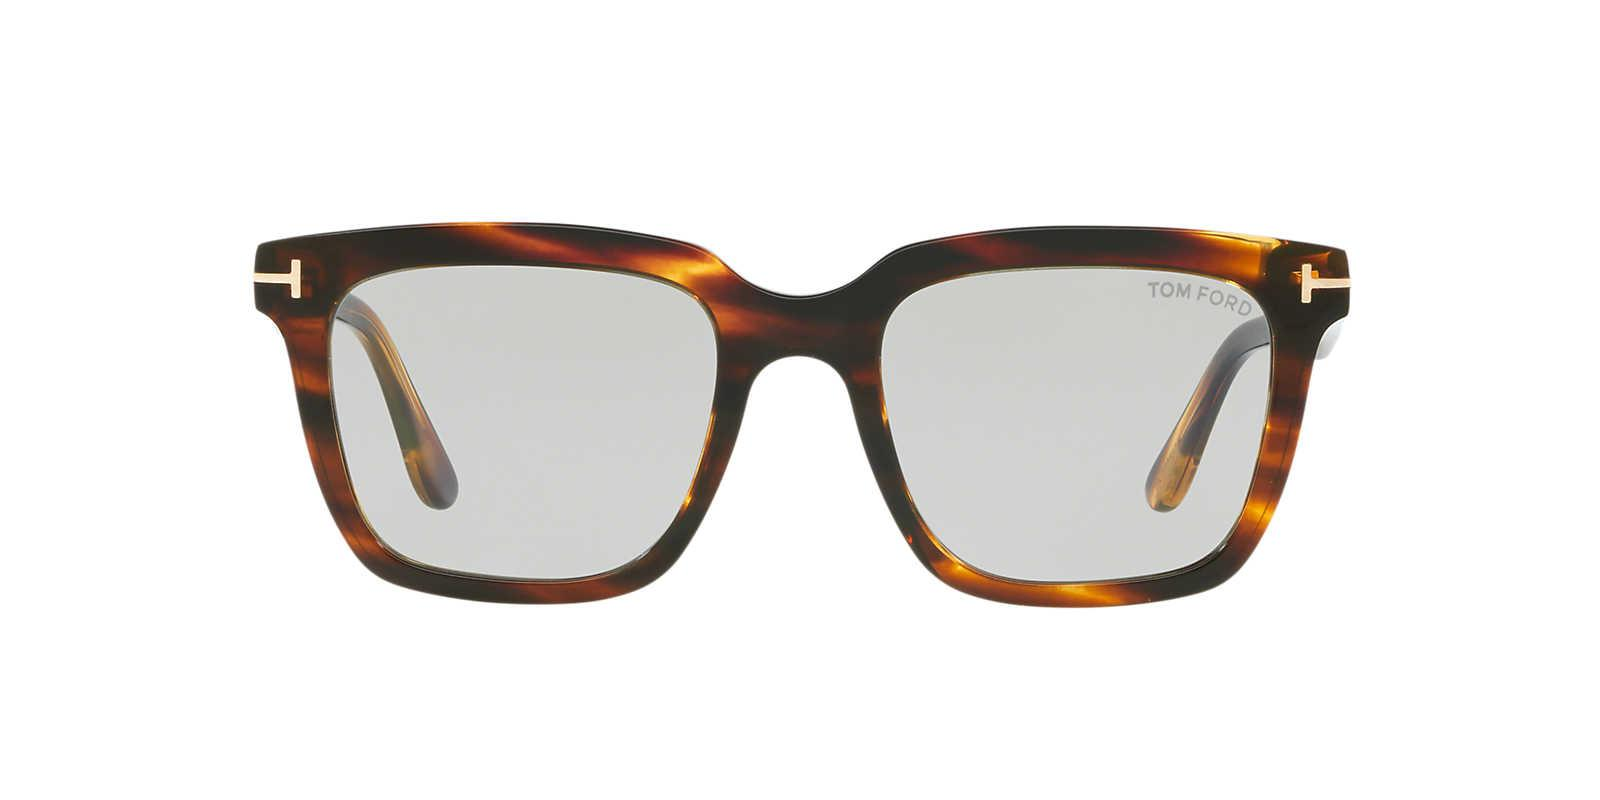 3adcc0f1af73 Tom Ford Sunglass Ft0646 53 in Blue for Men - Lyst